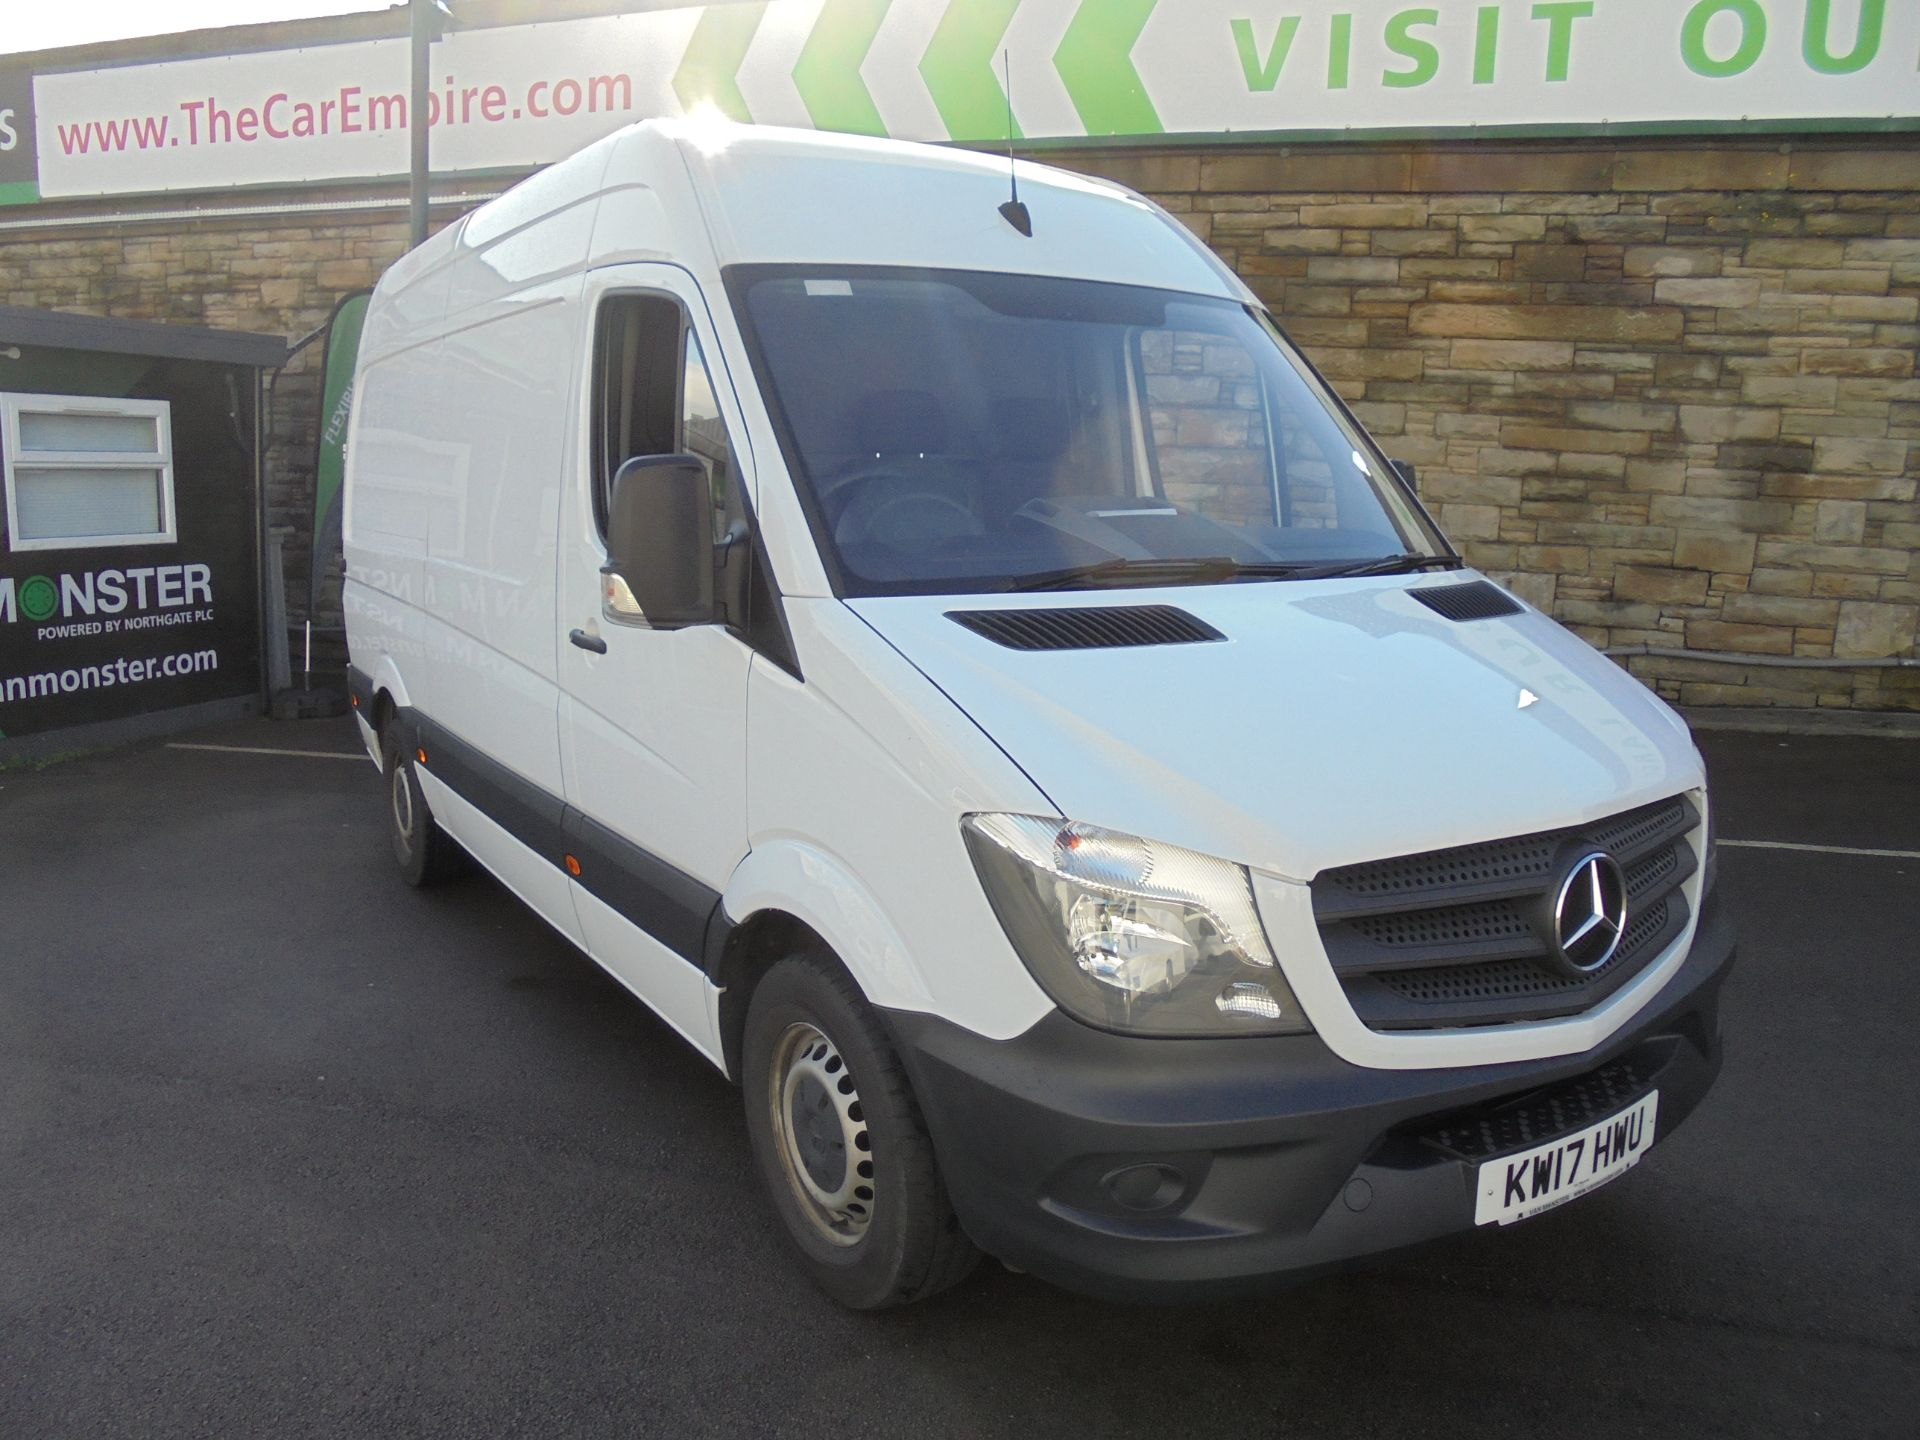 2017 Mercedes-Benz Sprinter 3.5T High Roof Van MWB (KW17HWU)